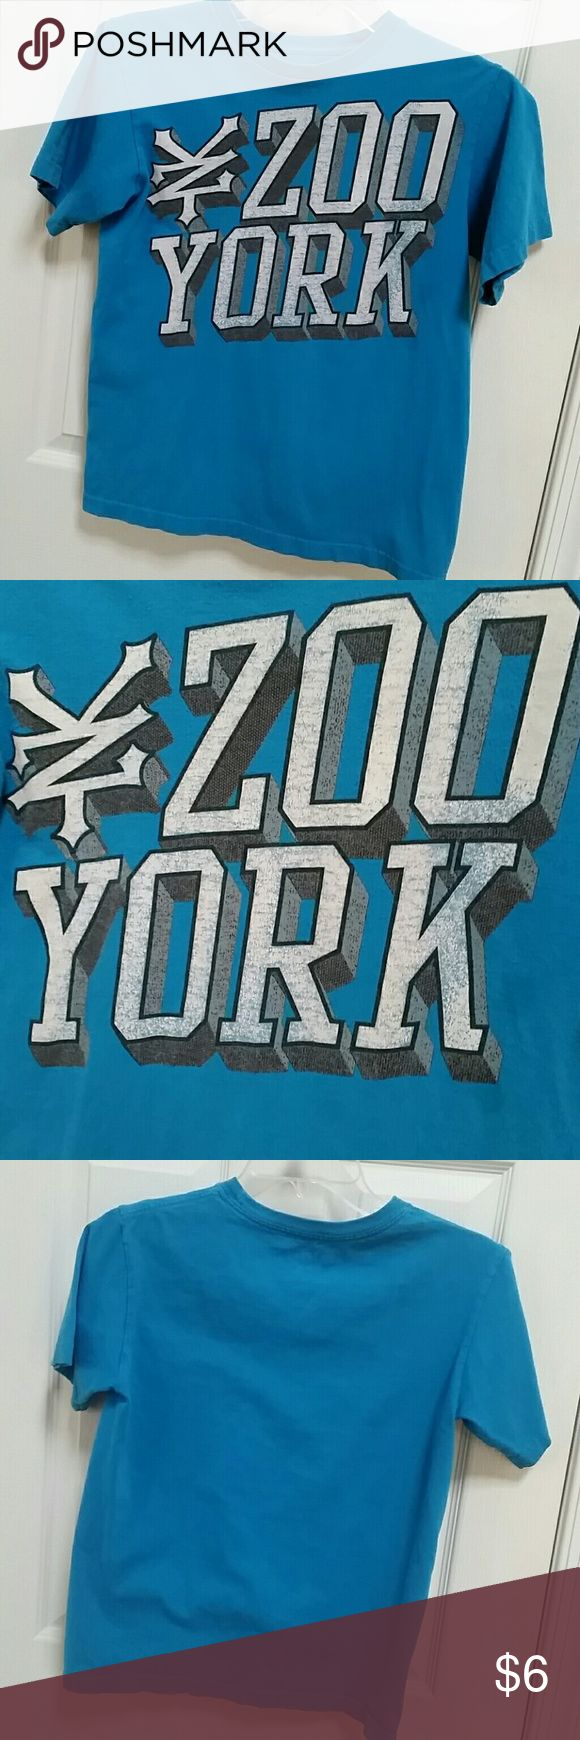 "Boy's Zoo York shirt Boys size 12/14 teal blue tee sheet with Zoo York logo. Good condition, but just a bit faded. Length 22.25"". Zoo York Shirts & Tops Tees - Short Sleeve"